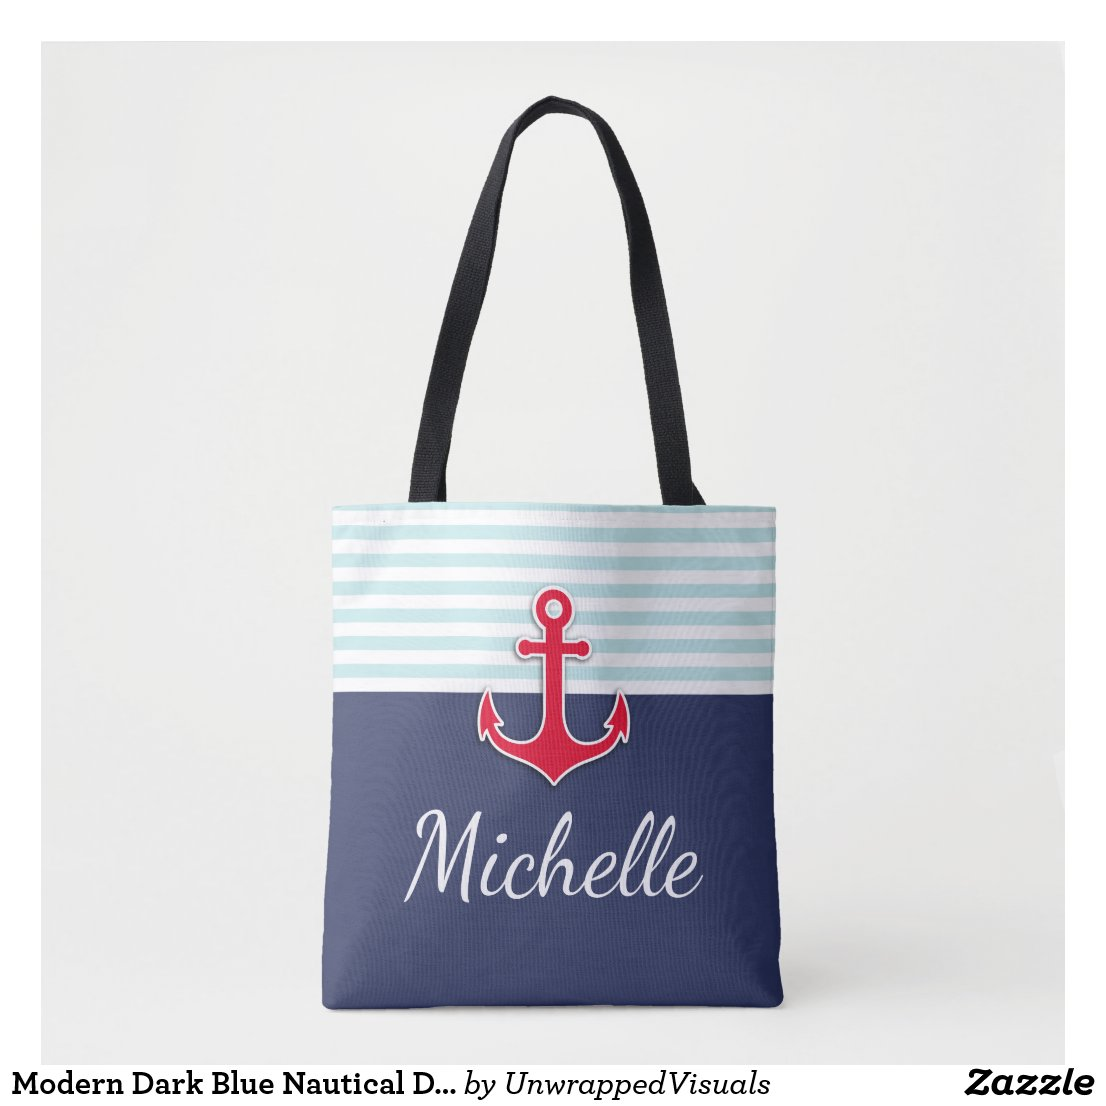 Modern Dark Blue Nautical Design Red Anchor Tote Bag